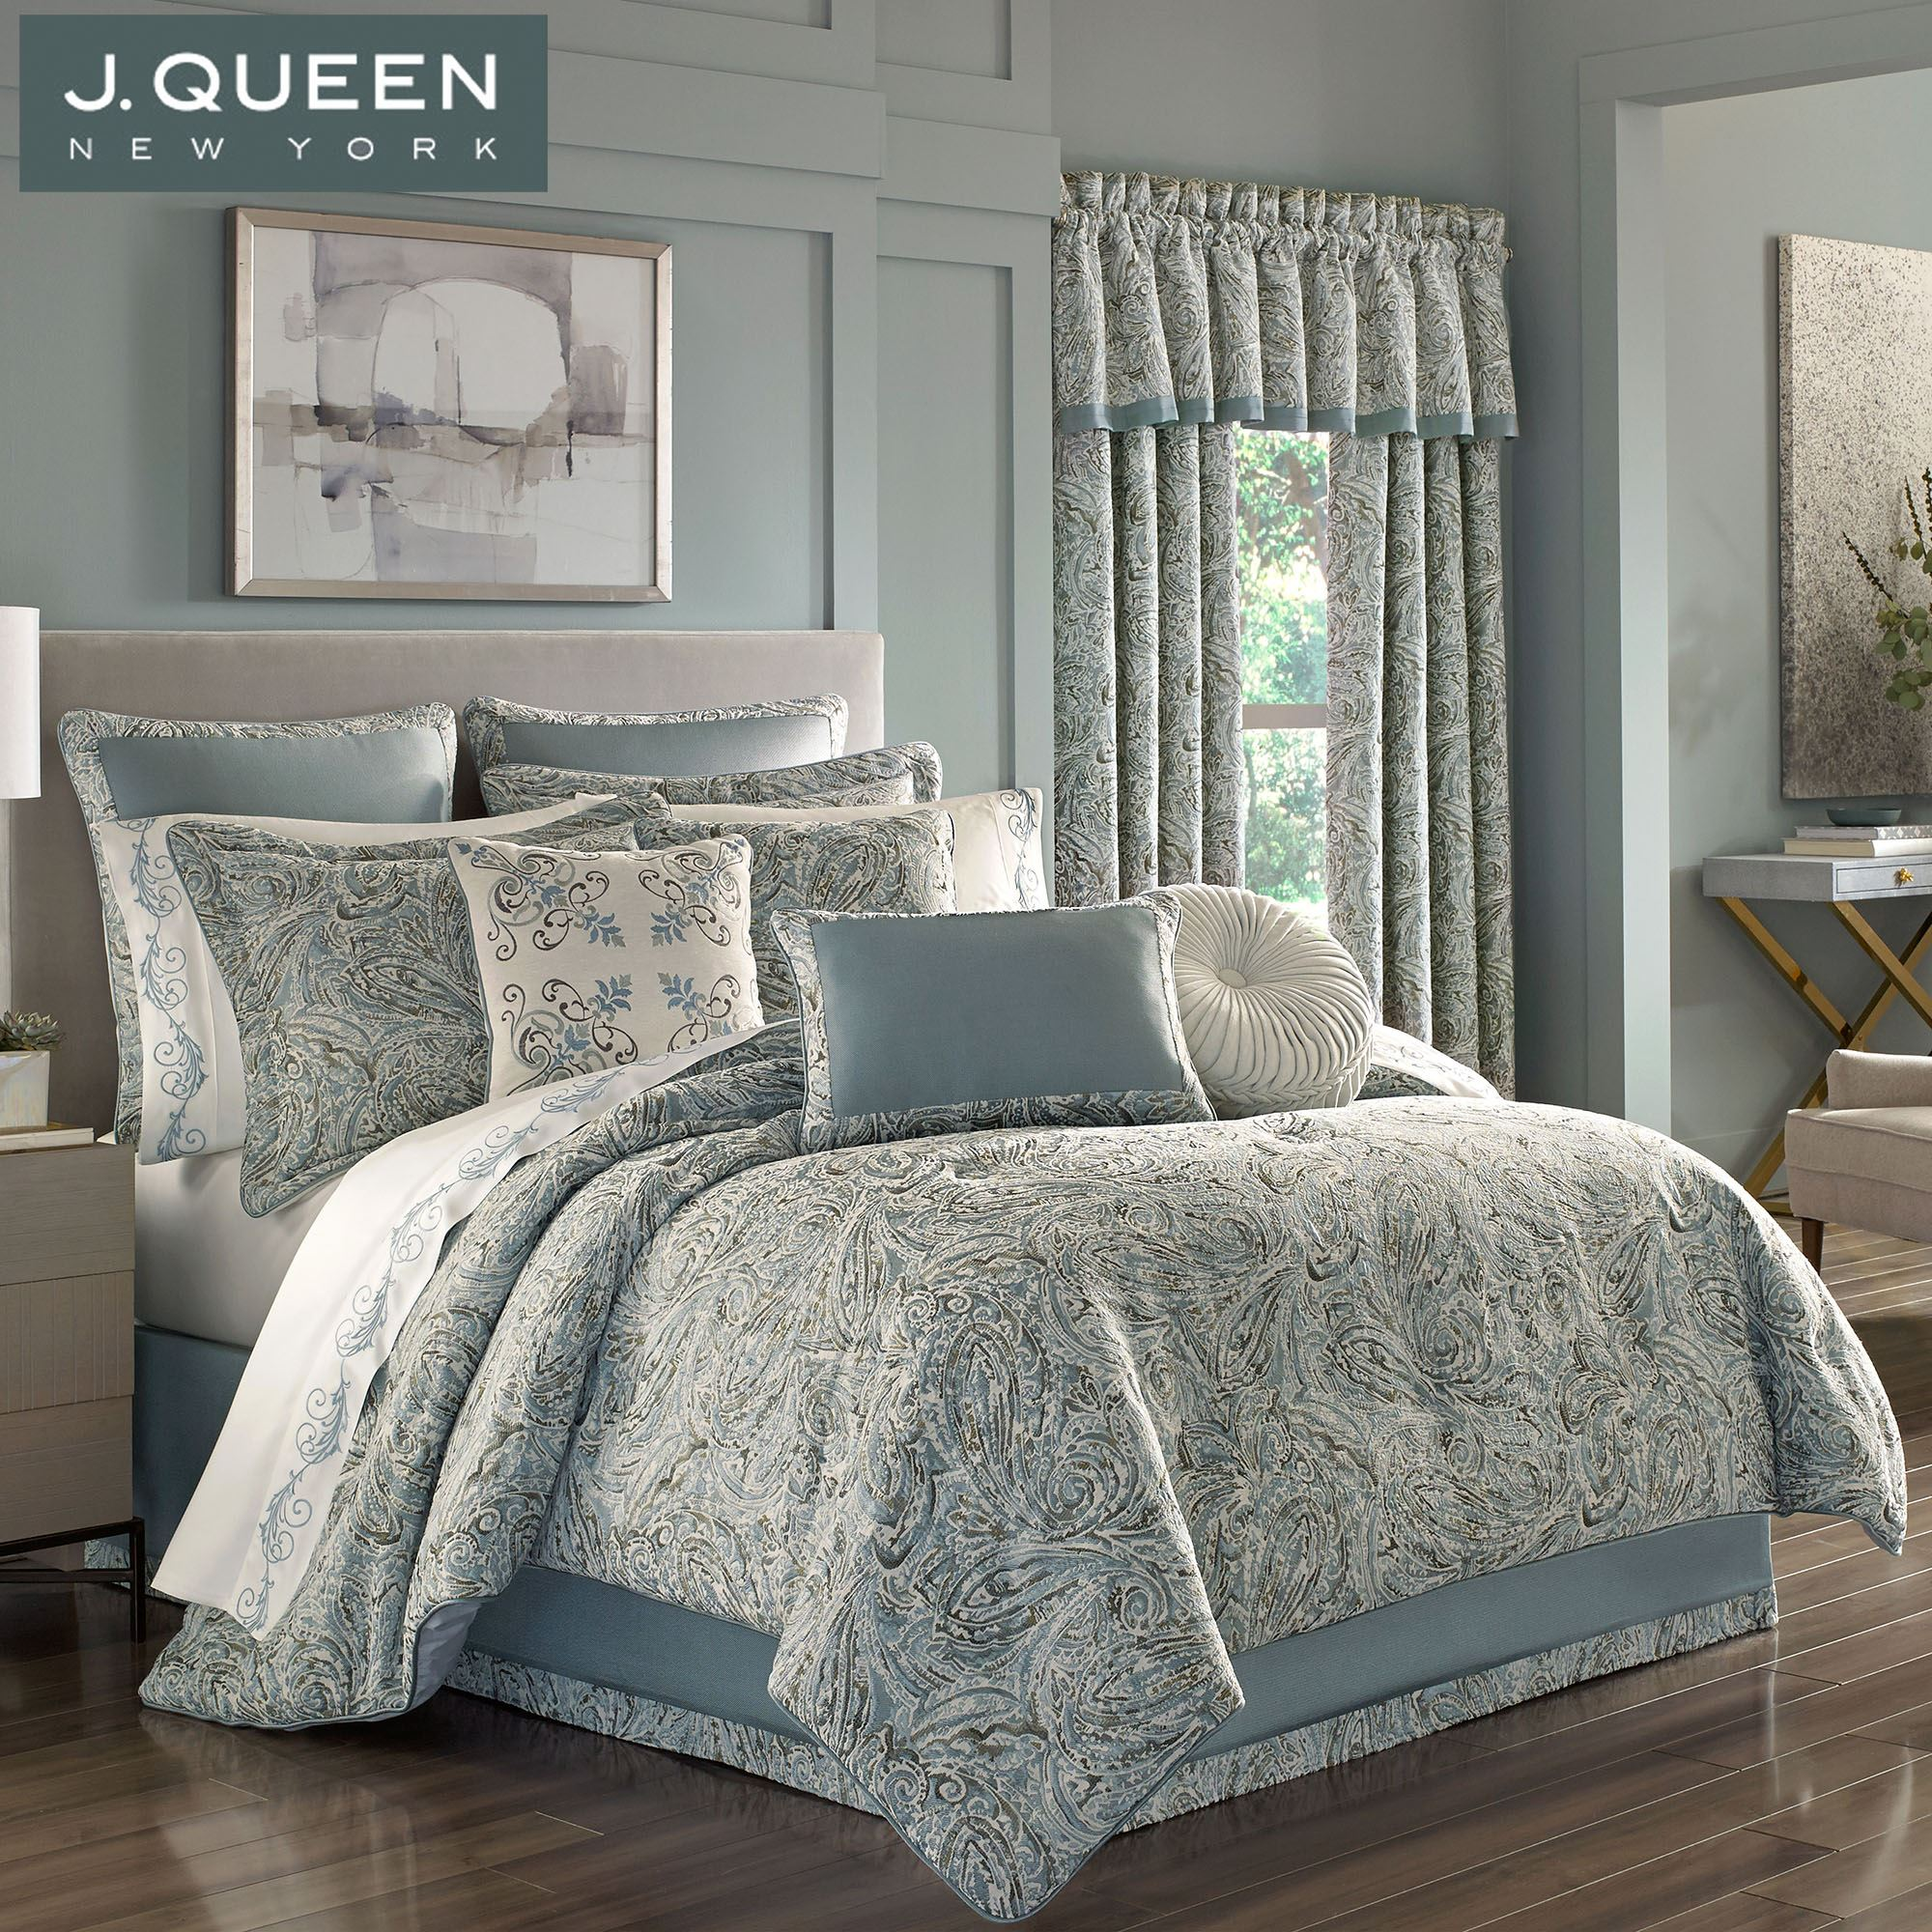 Giovanni Paisley Comforter Bedding By J Queen New York